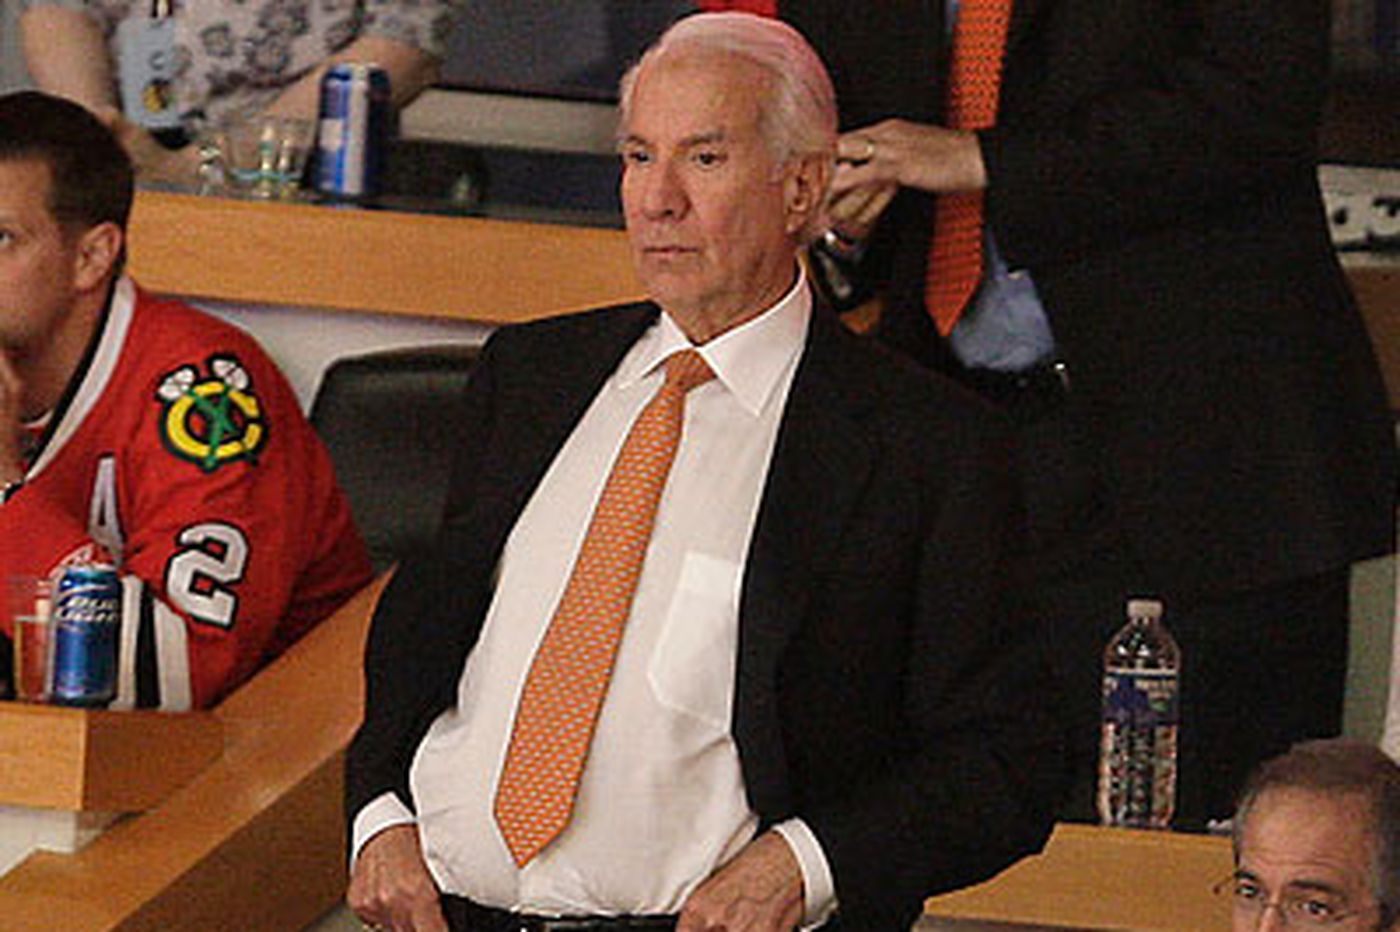 Flyers owner Snider weighs in on team's goalies